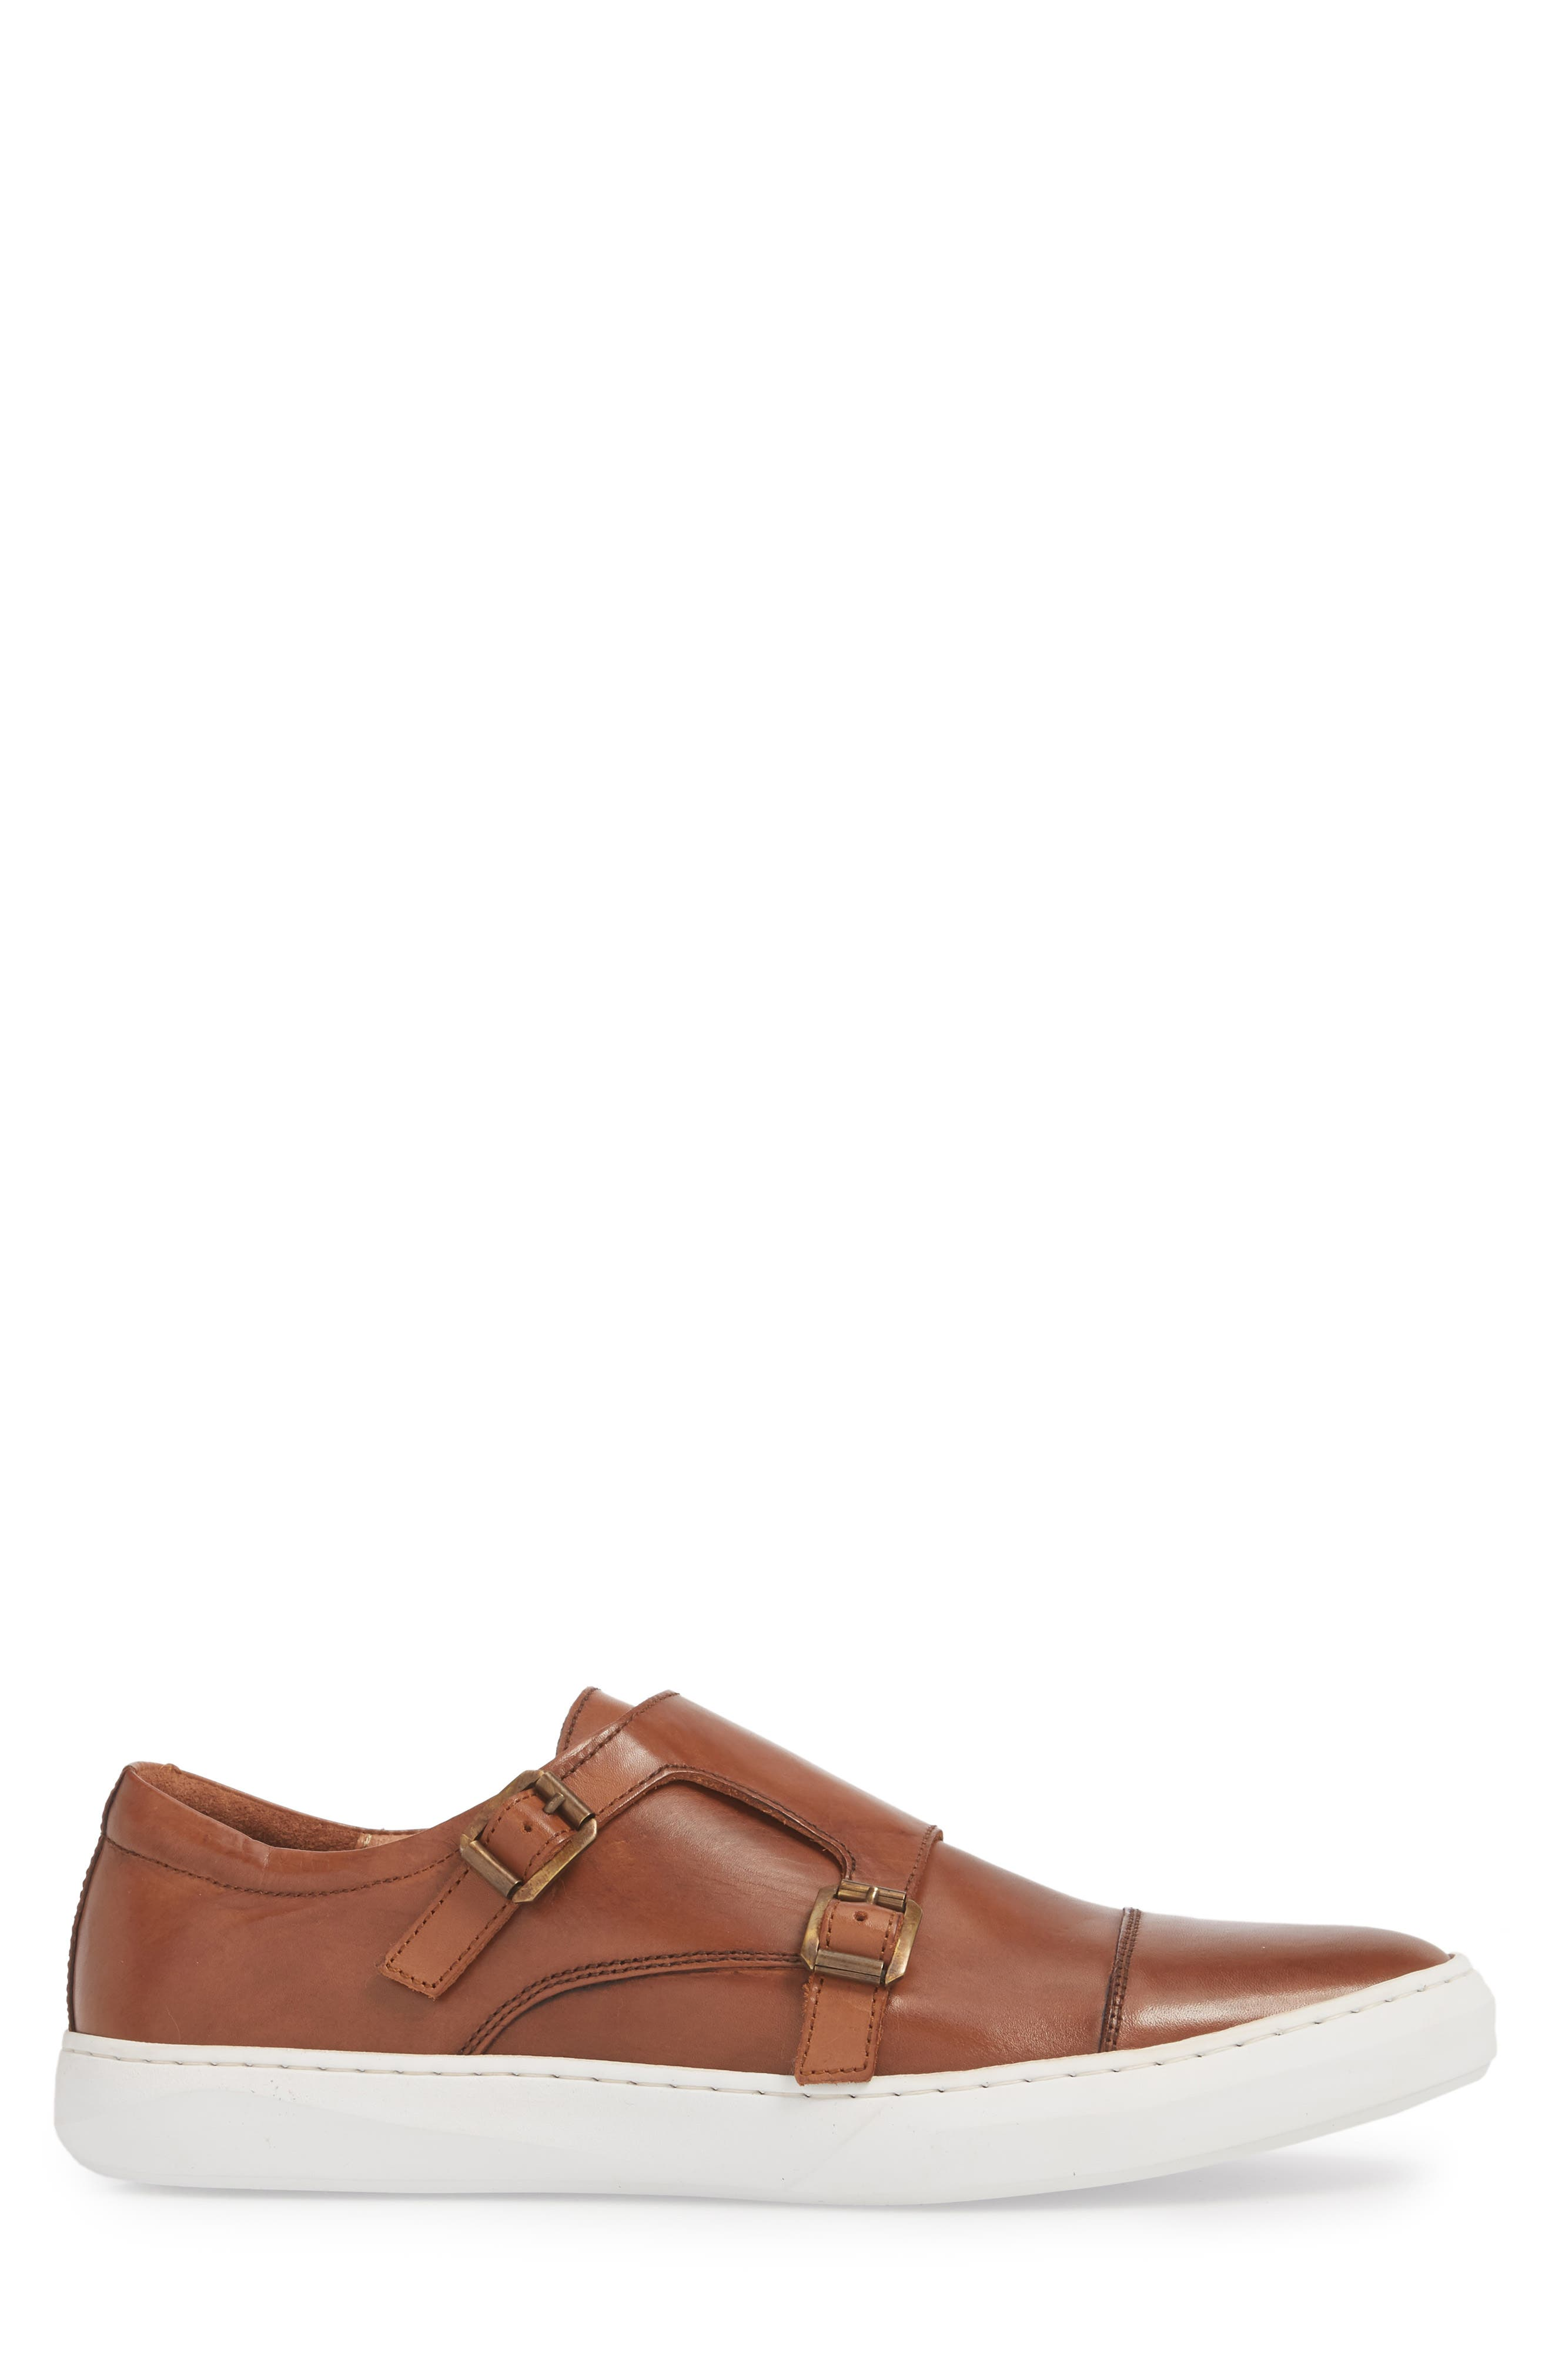 KENNETH COLE NEW YORK, Whyle Double Strap Monk Sneaker, Alternate thumbnail 3, color, COGNAC LEATHER